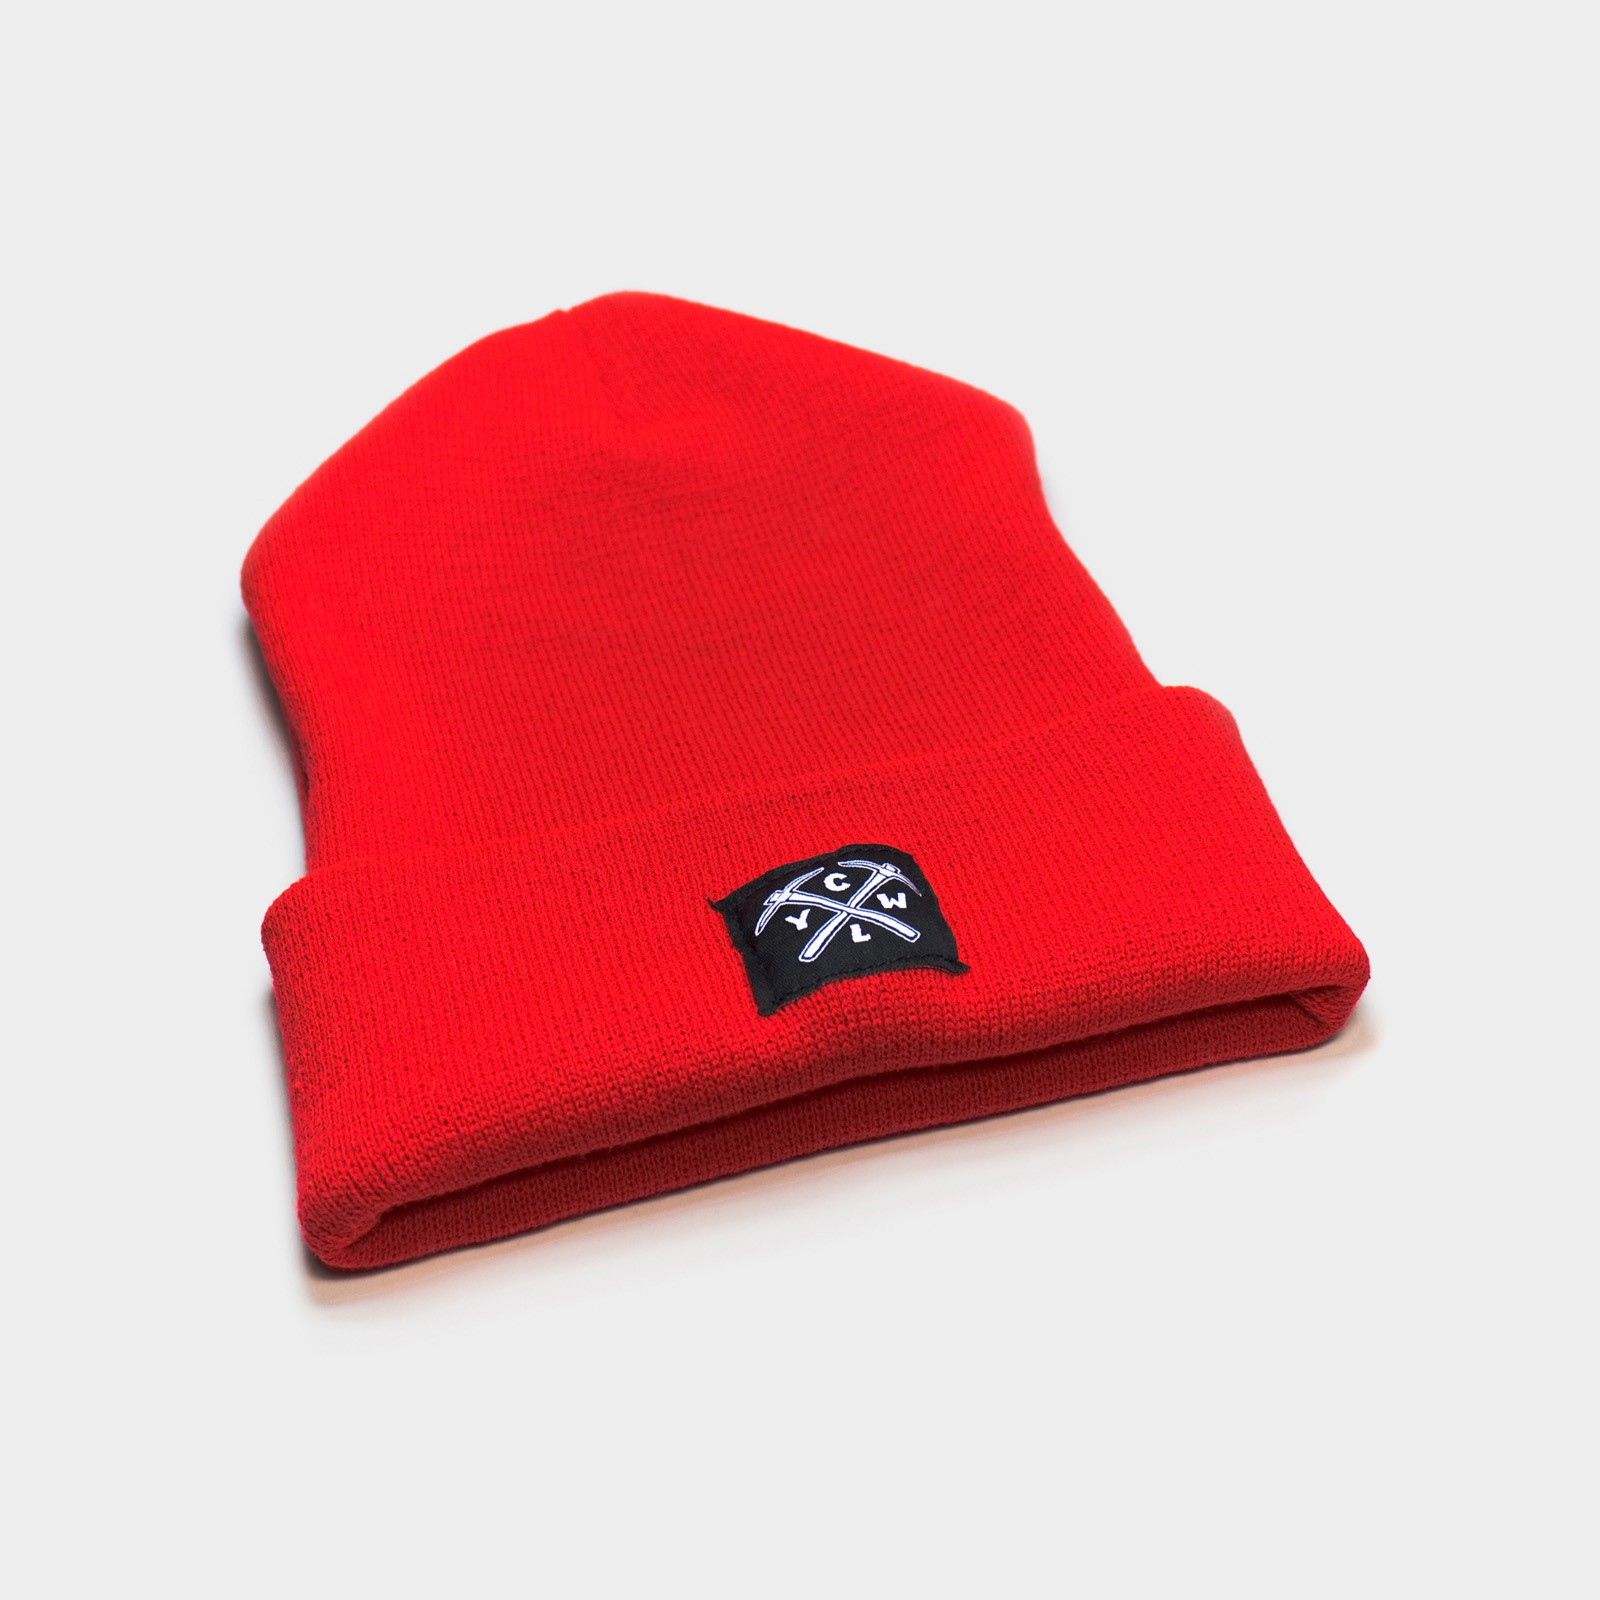 CLYW Beanie (Red) by CLYW